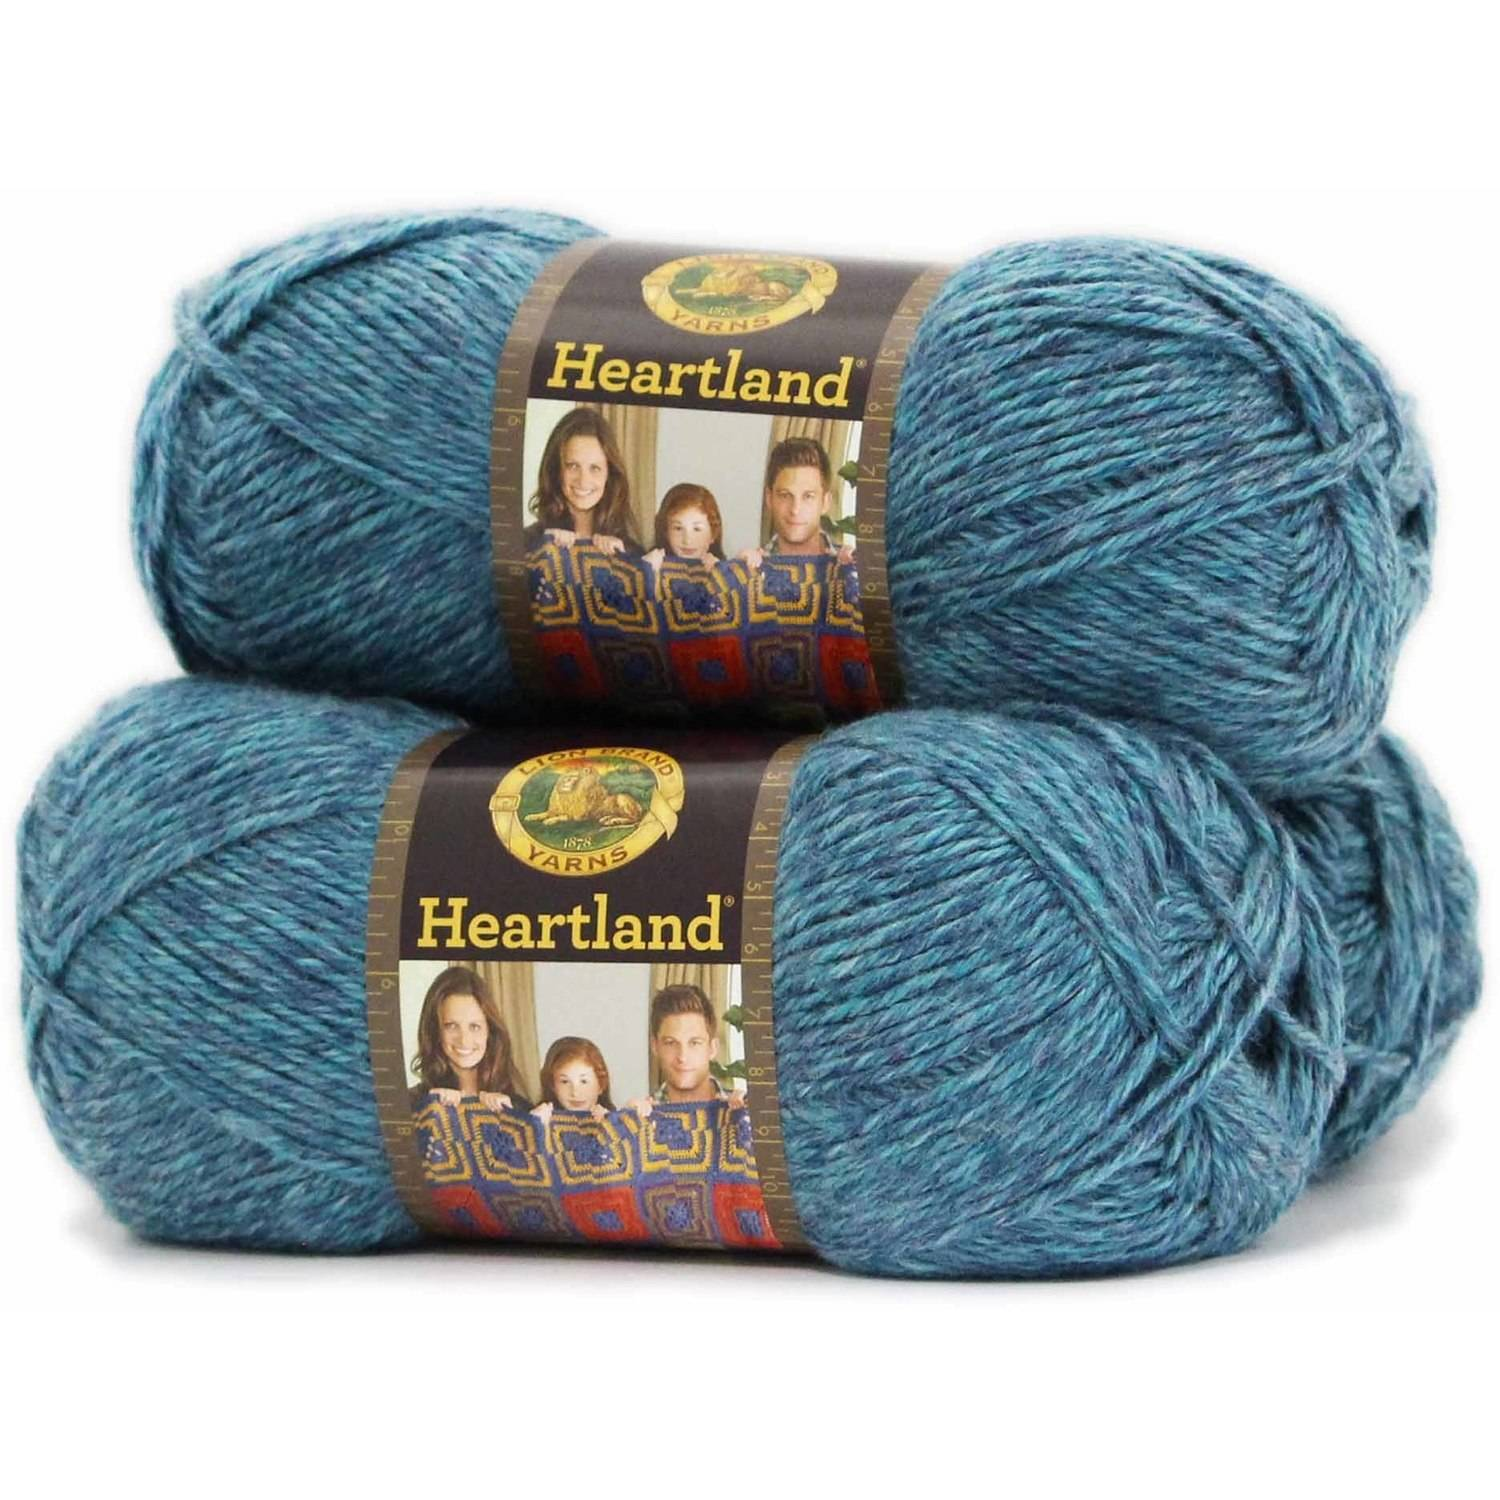 Lion Brand Yarn Heartland 100 Percent Acrylic Yarn, 3 Pack